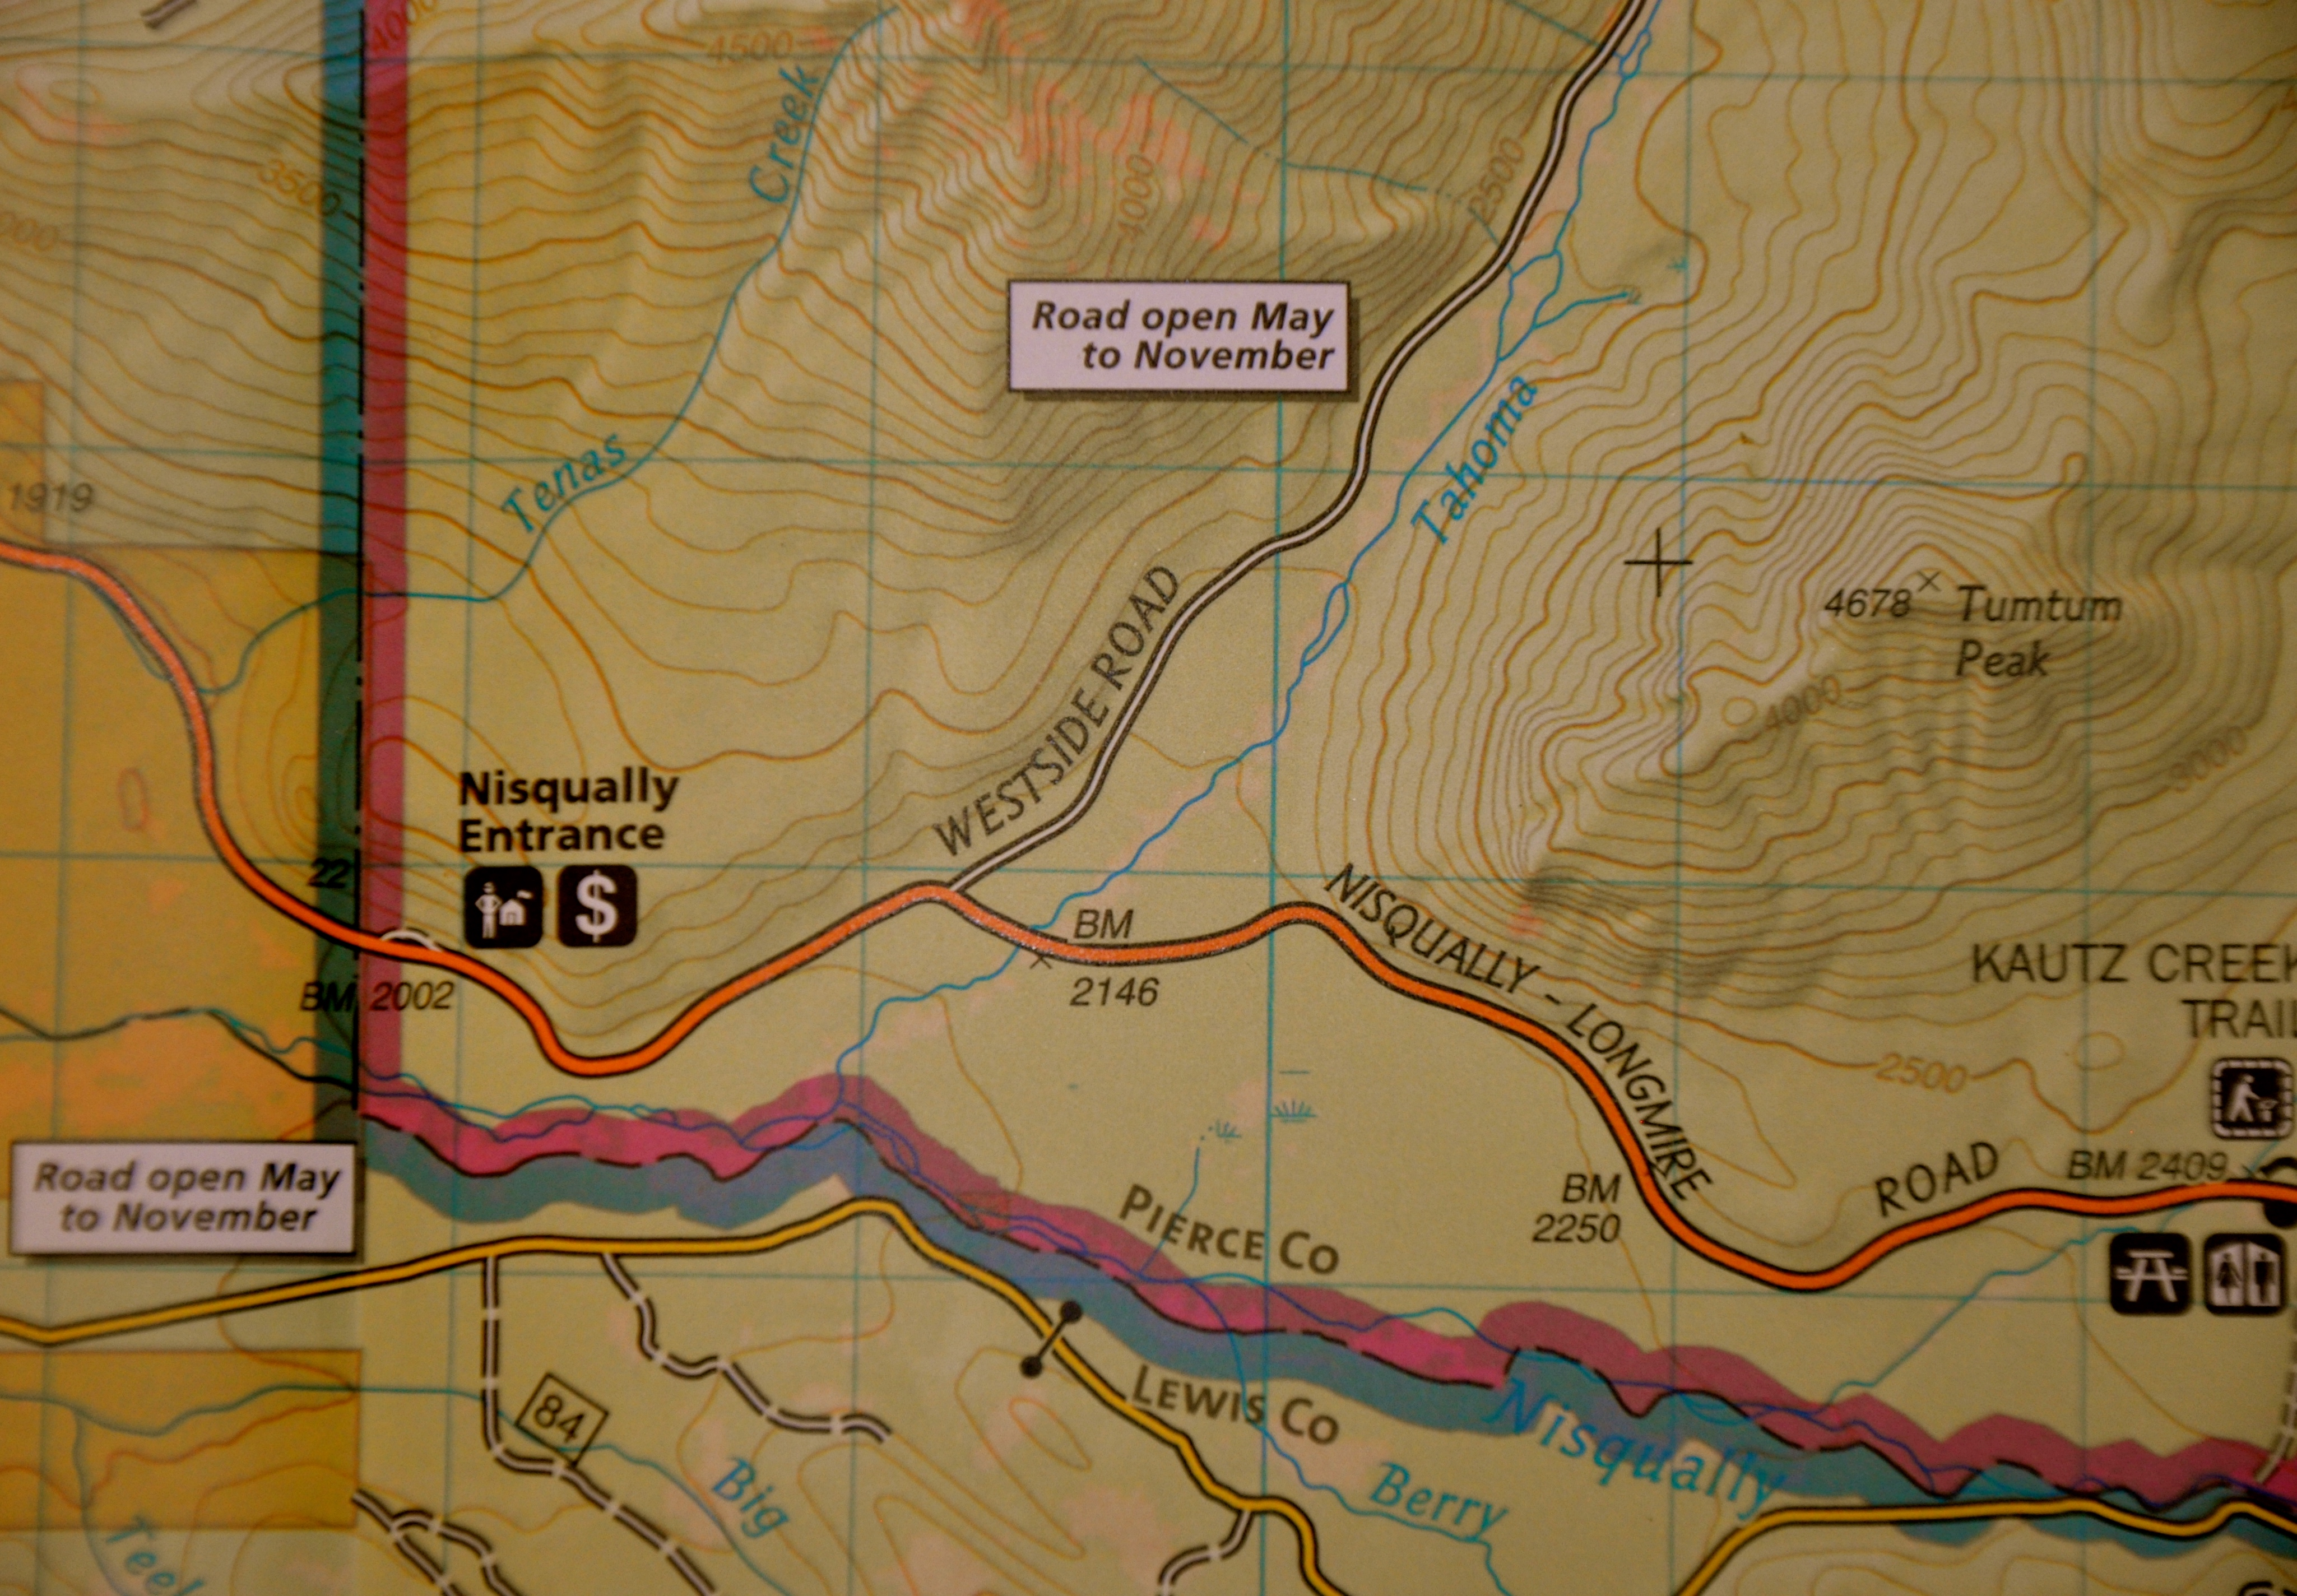 Map of MRNP showing the Nisqually Entrance and the road towards the Kautz Creek Trailhead.